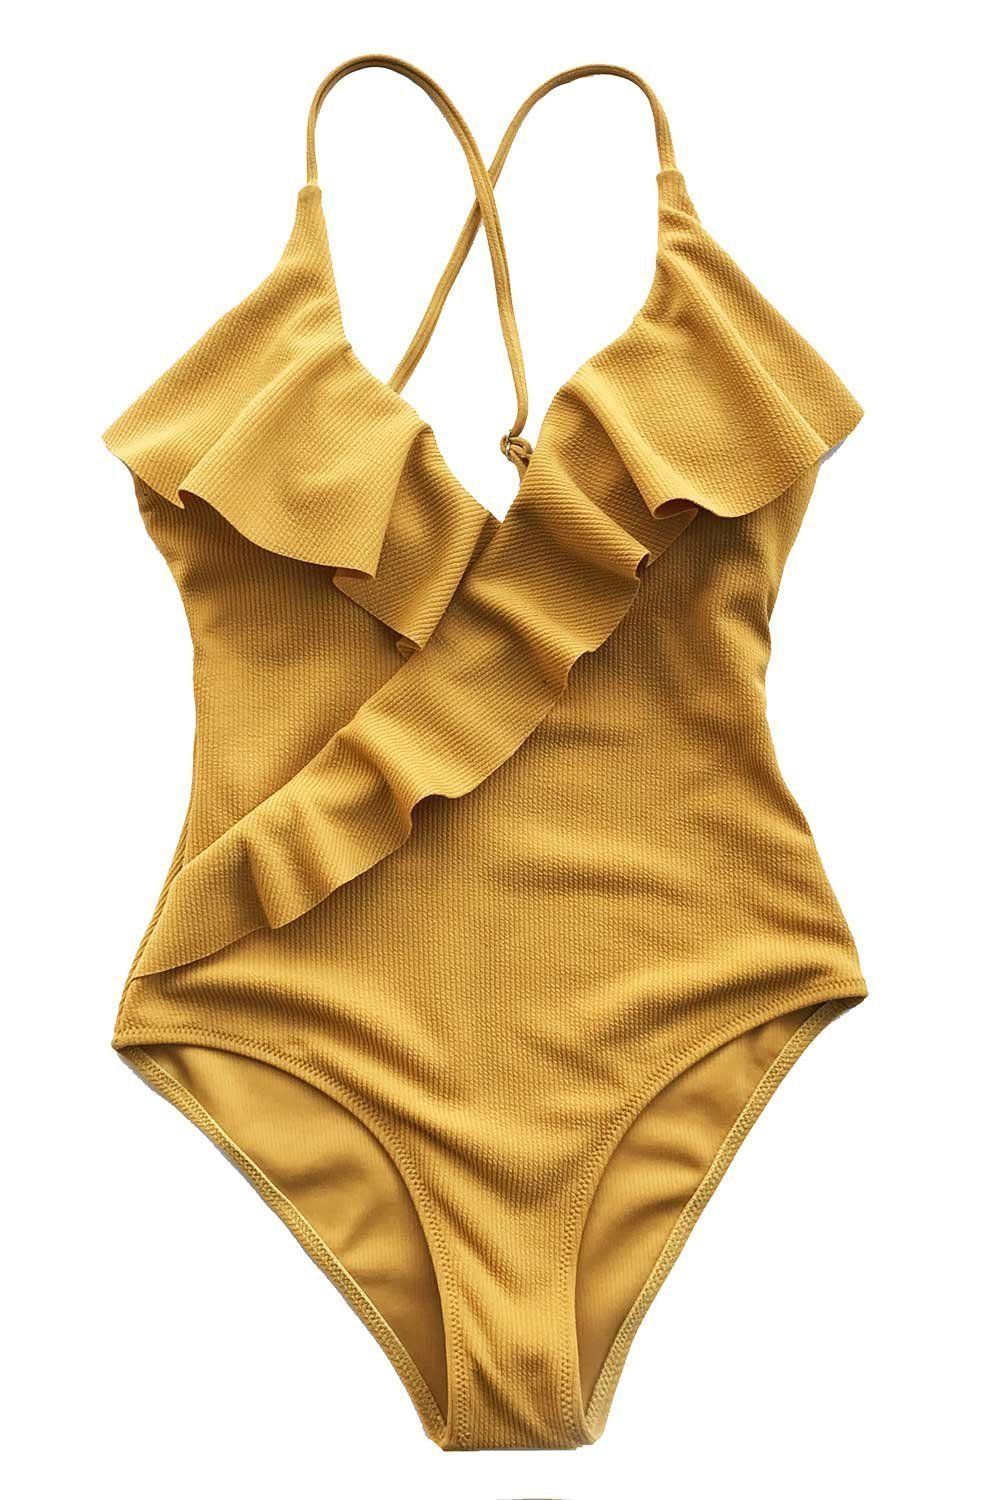 Cupshe Fashion Happy Ending Solid One-Piece Swimsuit Beach Swimwear Bathing Suit (S),Yellow